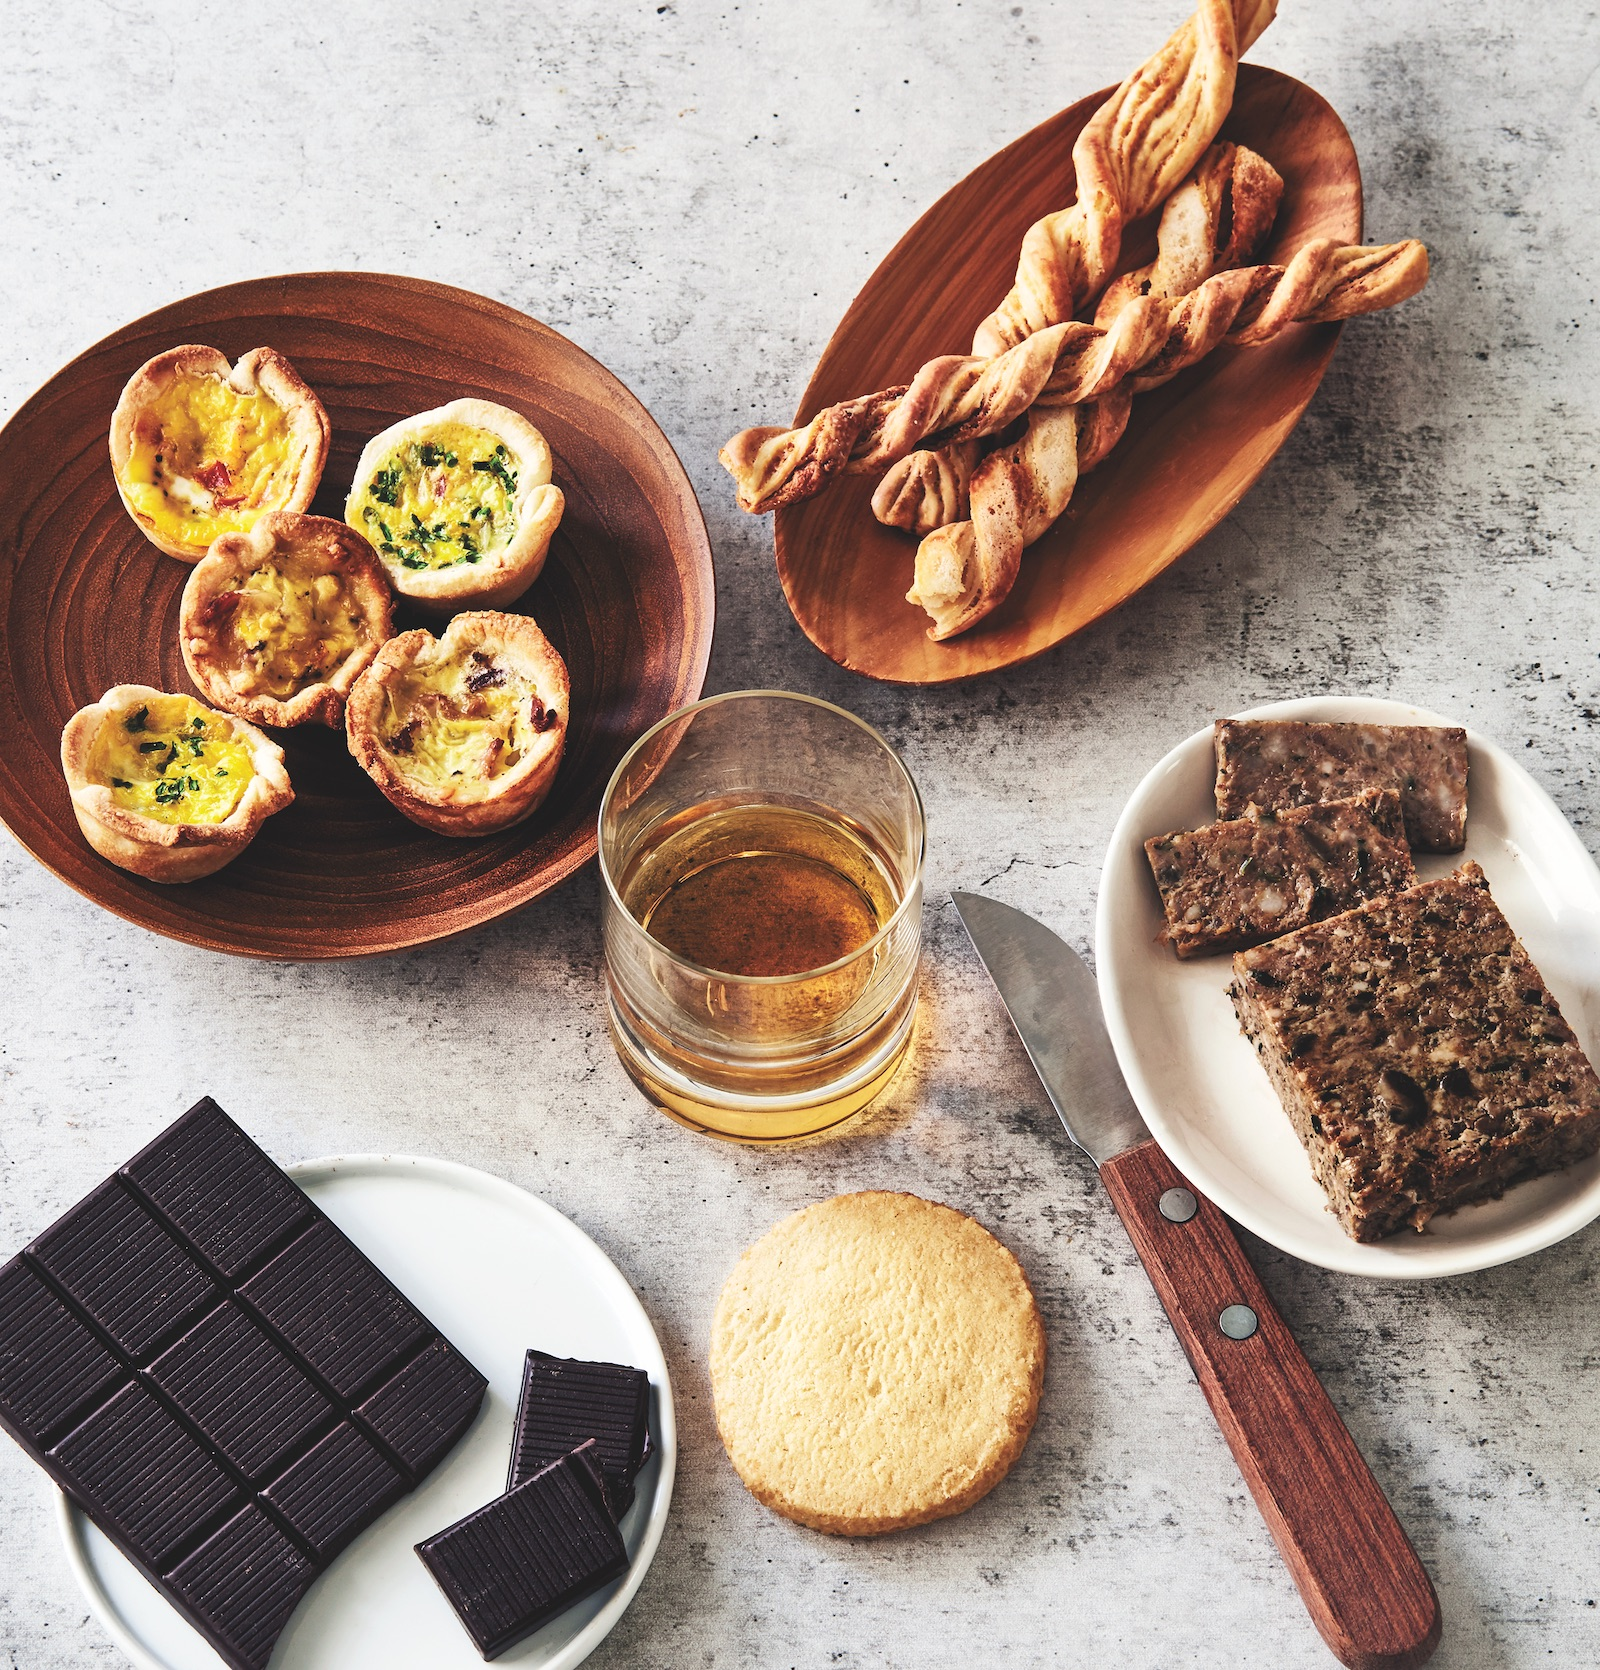 quiche, cheese straws, dark chocolate, paté, and vanilla cookie with a glass of Irish whiskey